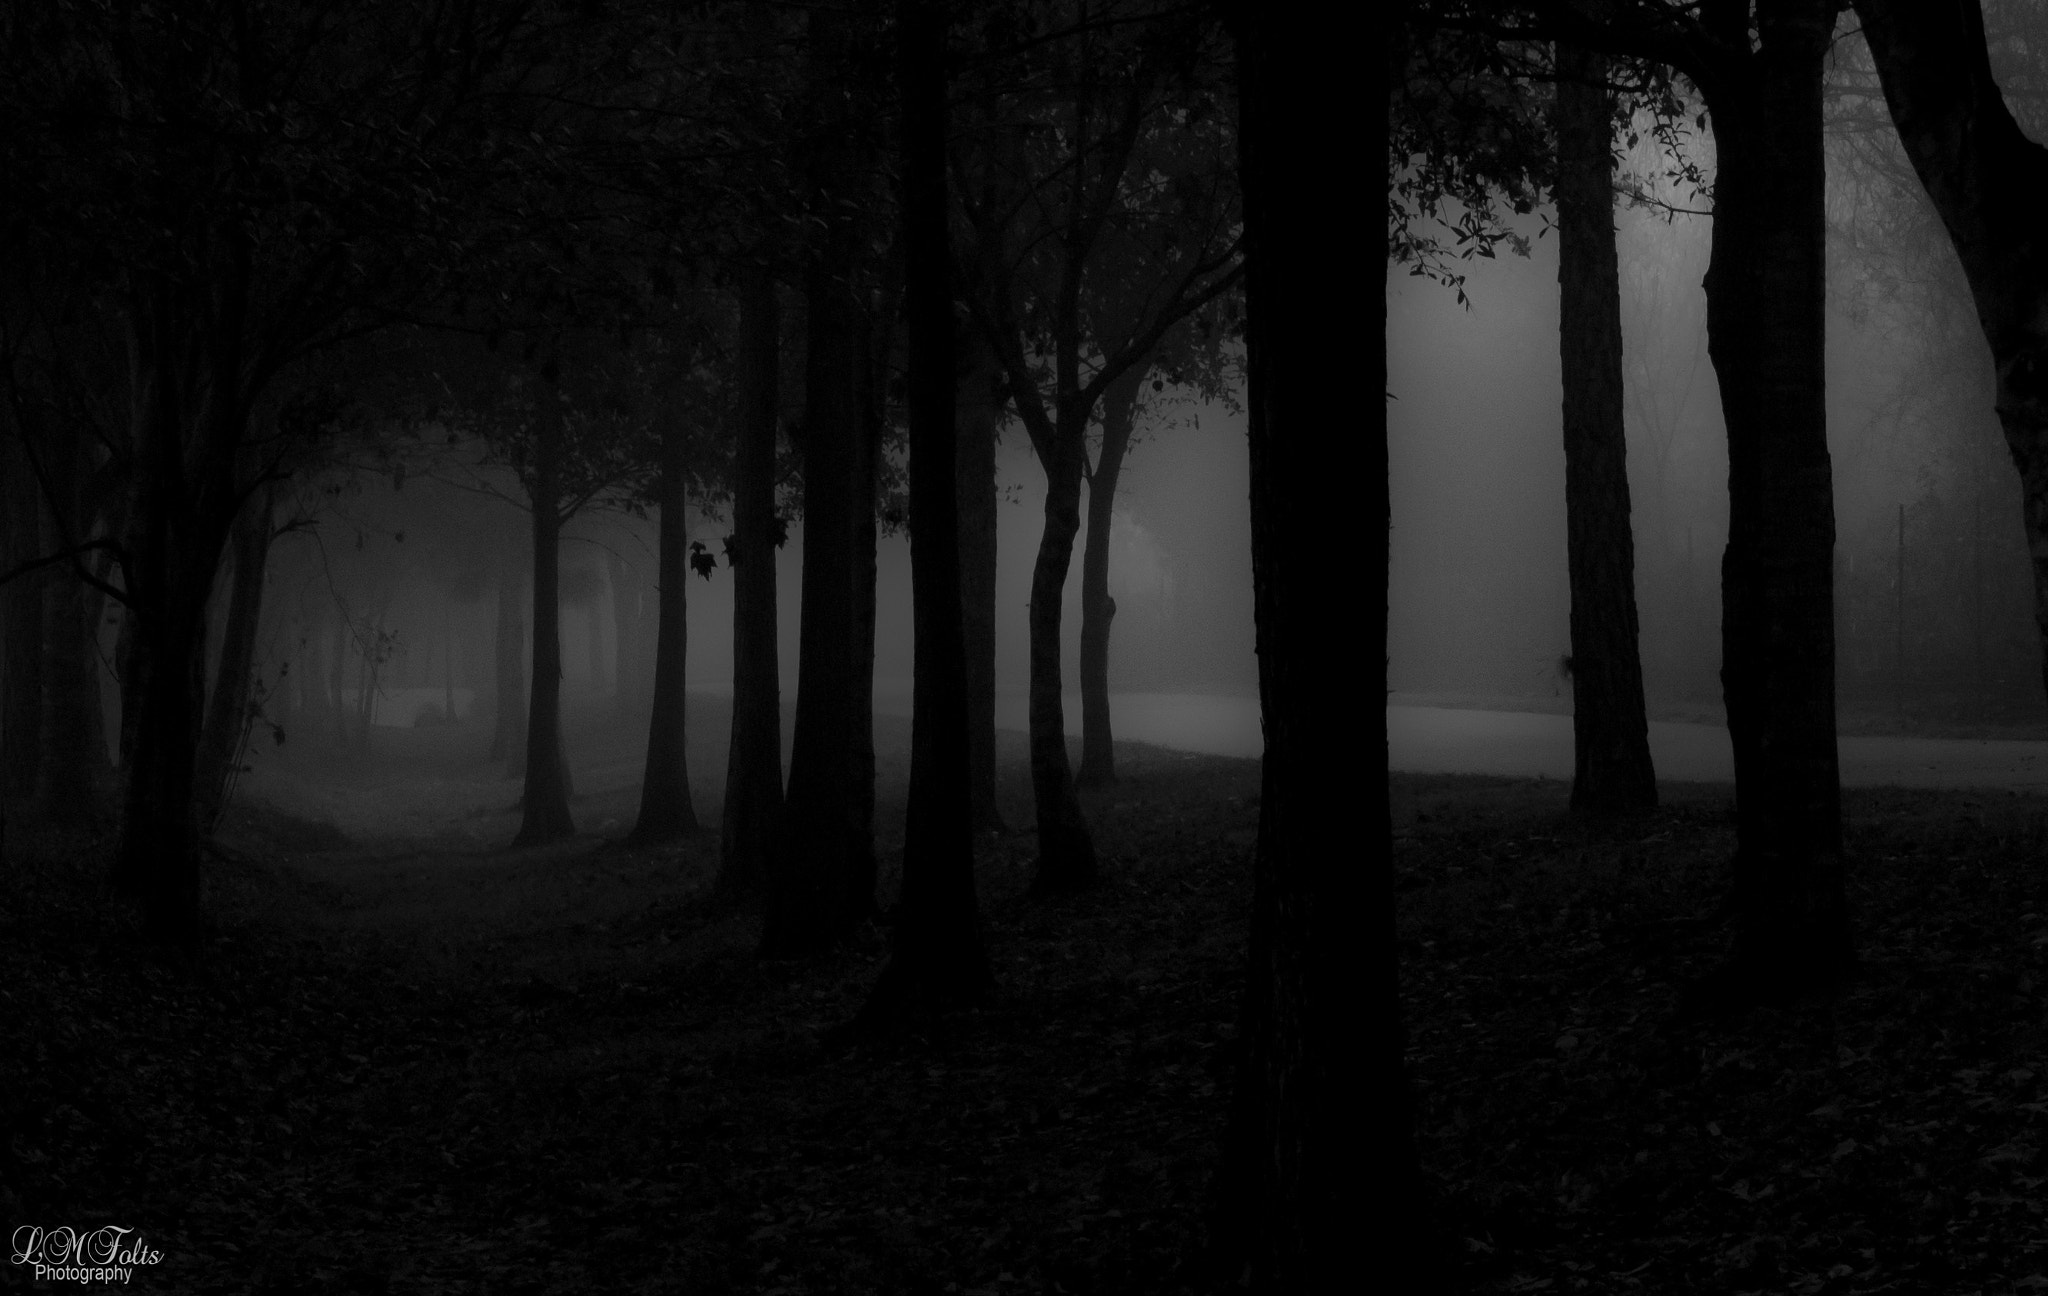 Photograph In the Dark by Lynn Marie on 500px